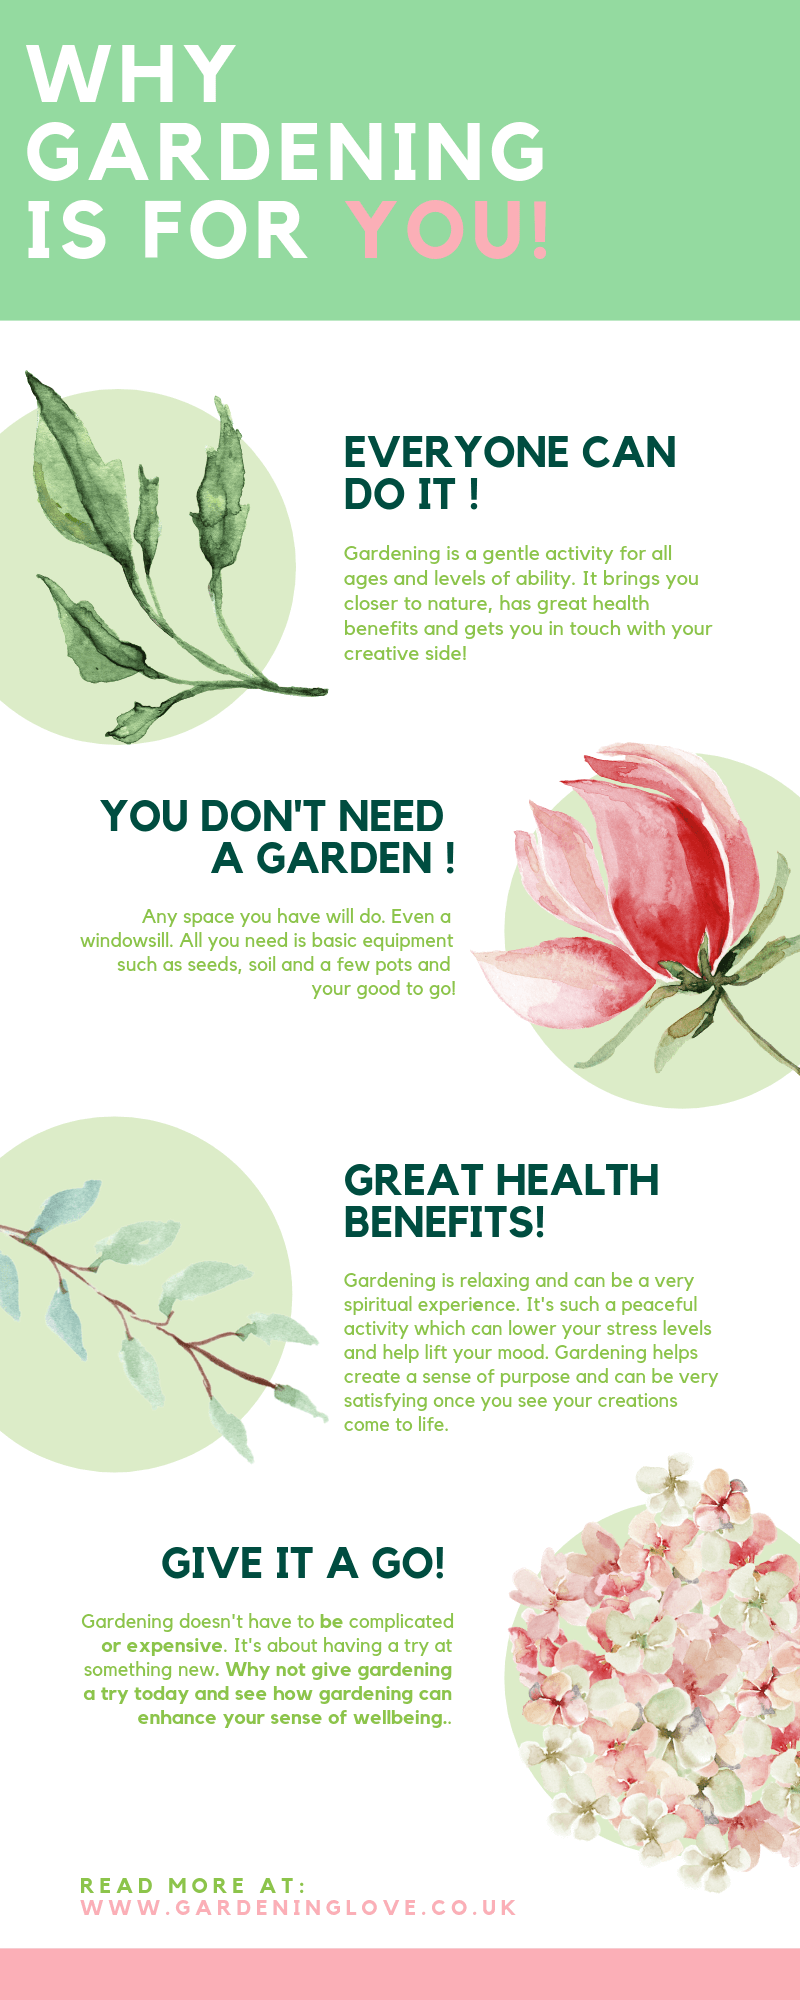 Heath benefits of gardening, reasons why gardening is underrated.